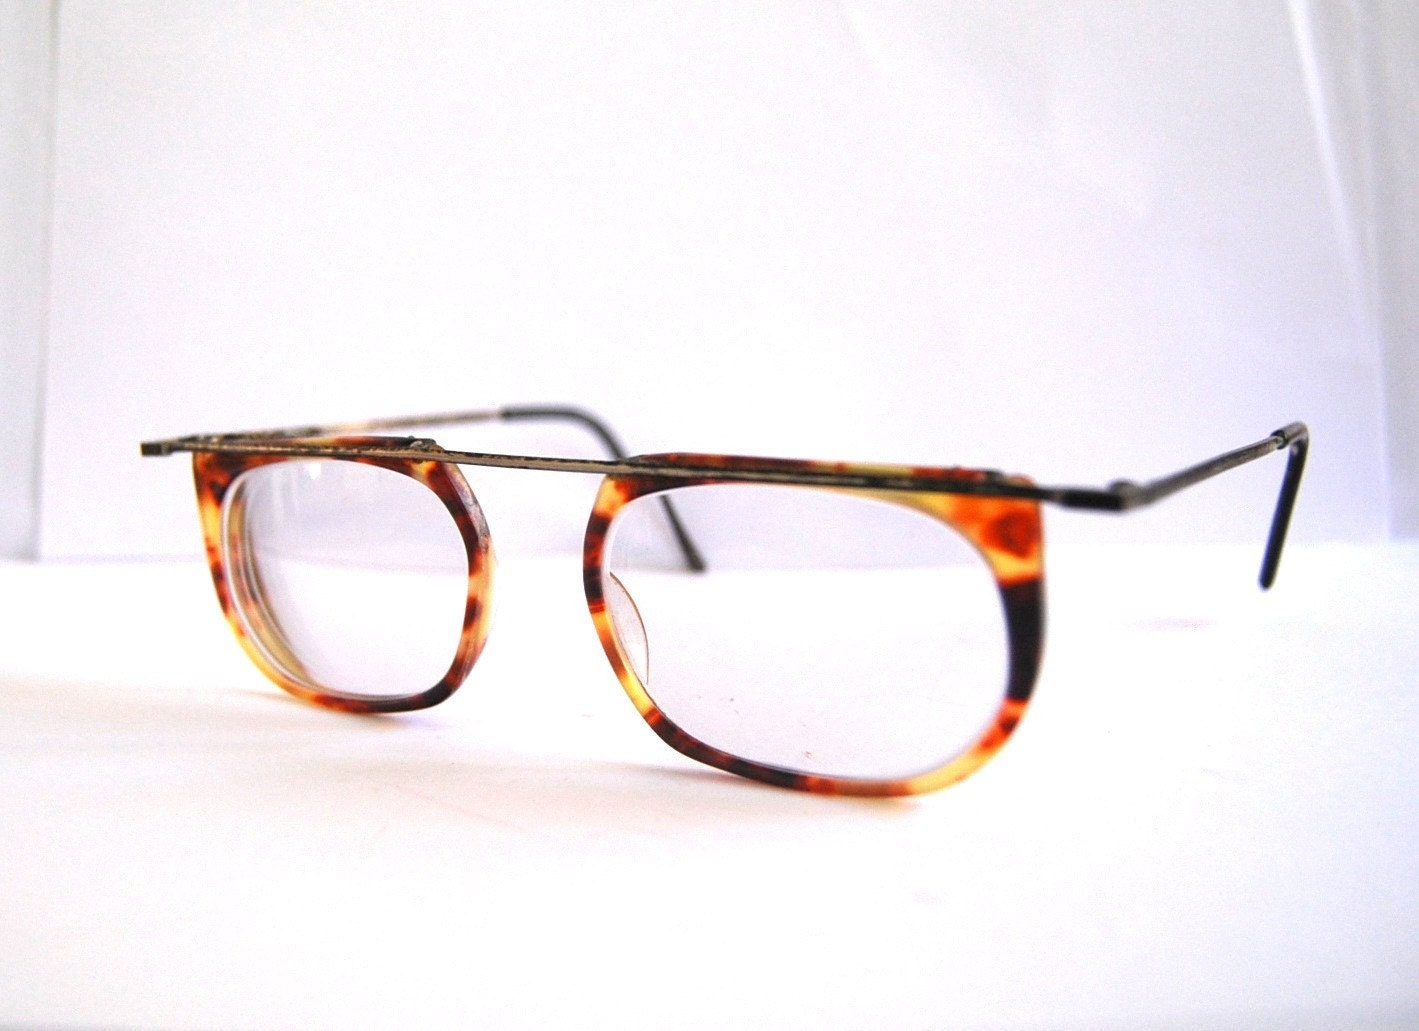 Vintage rare leopard eyeglasses made in Italy